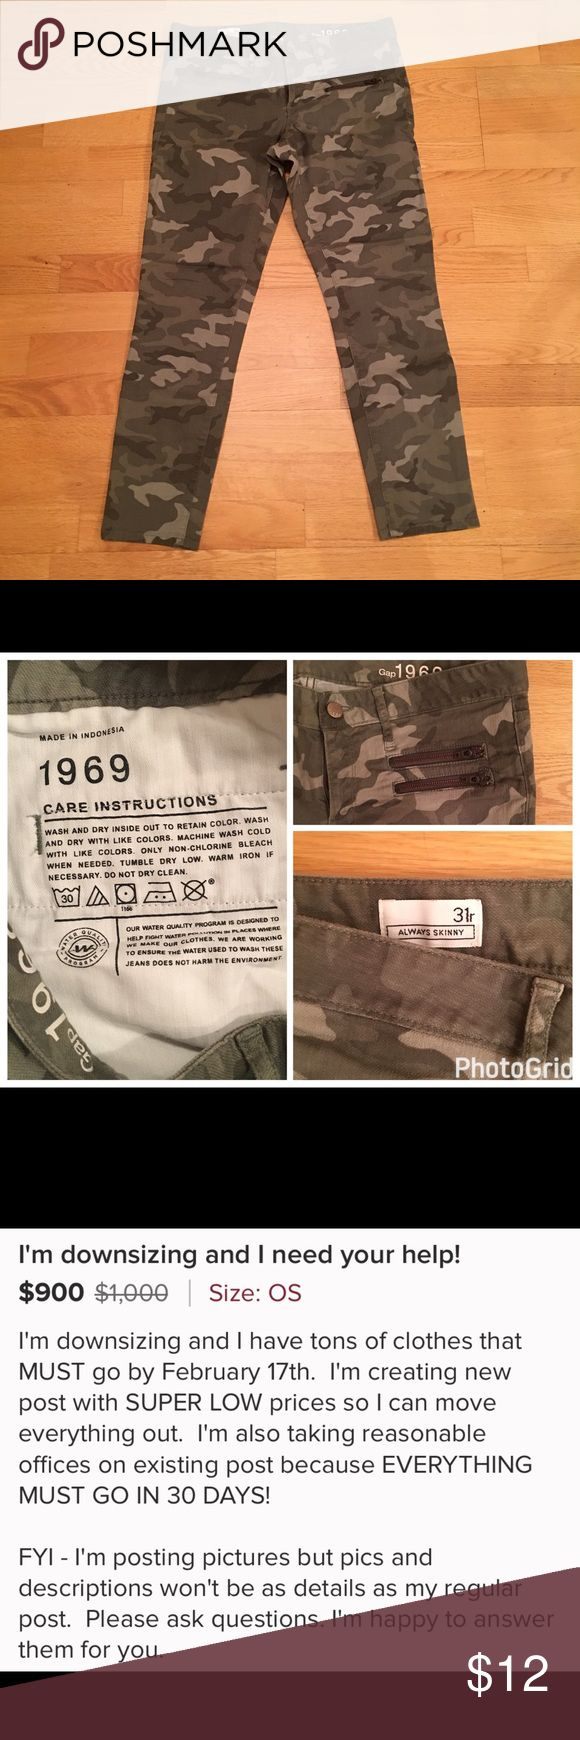 DOWNSIZING SALE!  Gap camouflage jeans camouflage ankle length pants with zipper details. DOWNSIZING SALE! Everything must go in 30 days! GAP Jeans Skinny